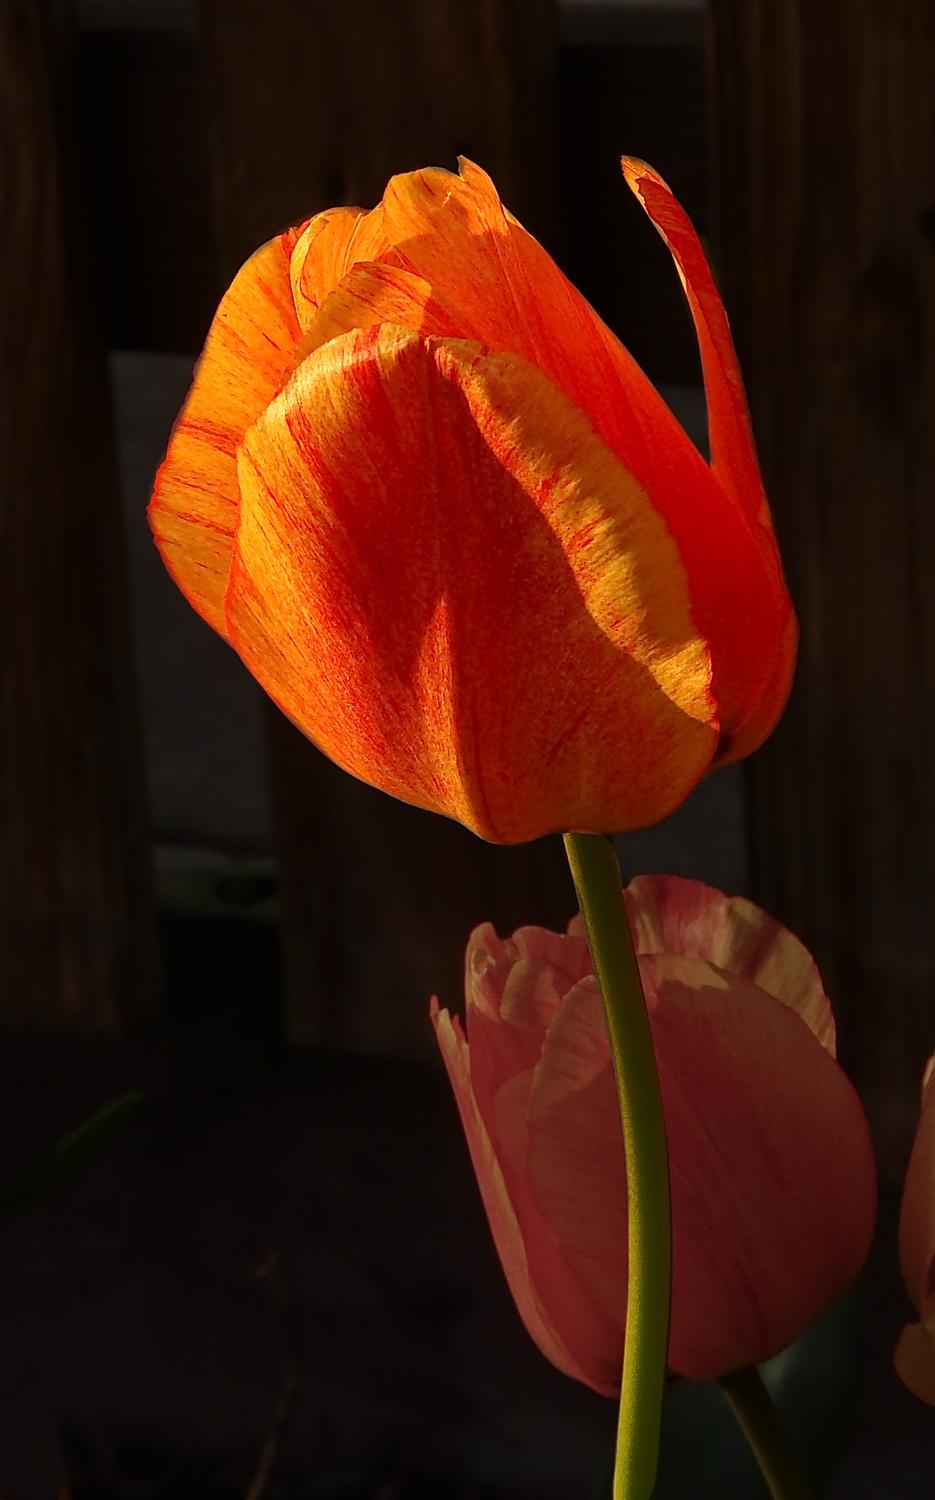 Tulip grown by The Artist's Muse - #4 - Tulip #4 - - art  - photography - by Tony Karp